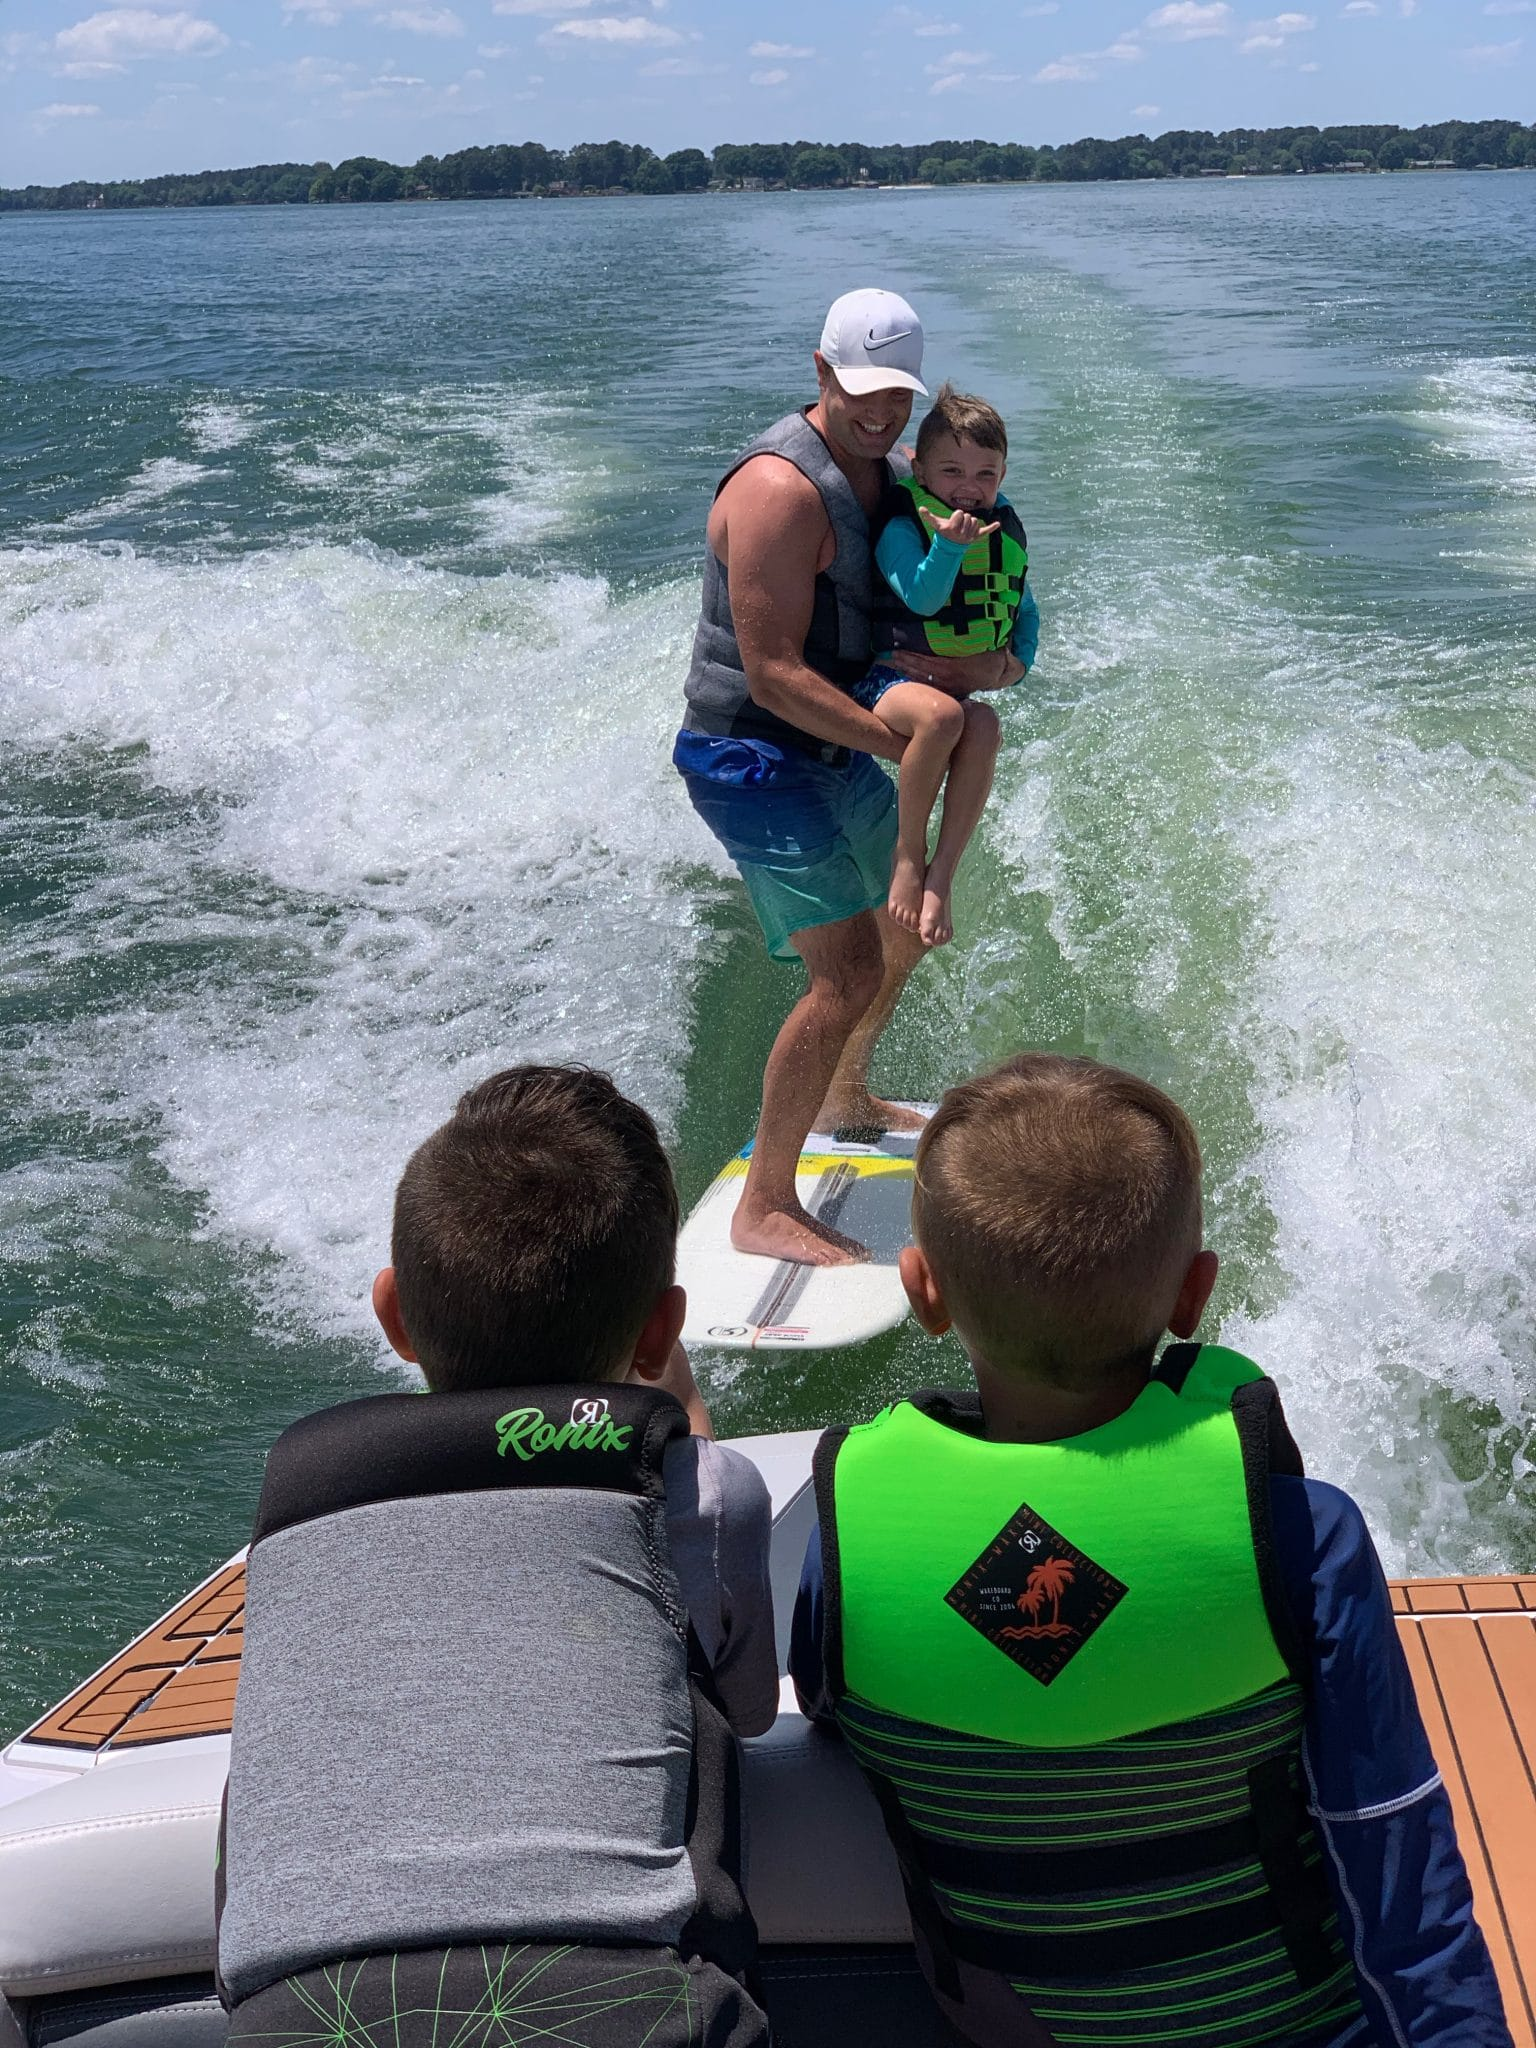 Lake Norman, Boy mom, Surfing Dad and son, Molly Wey